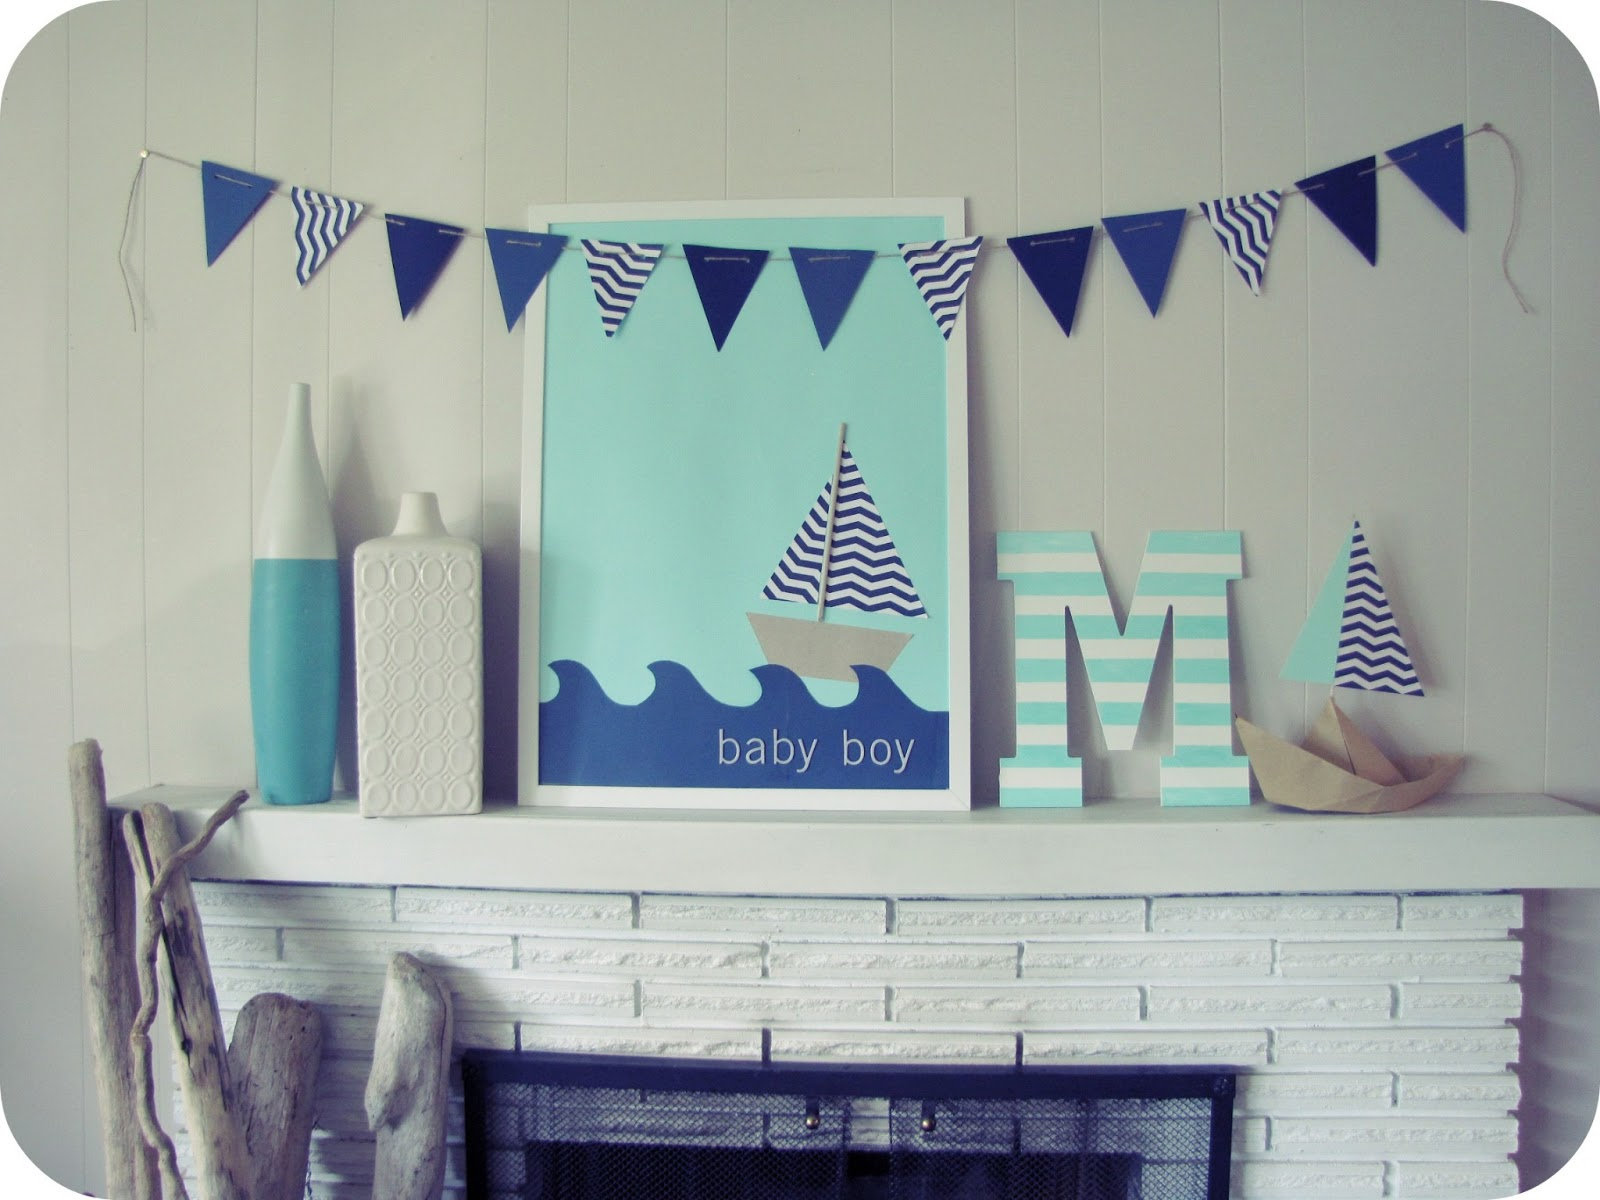 best decorating boys decorations interior pinterest and nautical shower home baby exterior decor fascinating ideas bedroom kitchen for